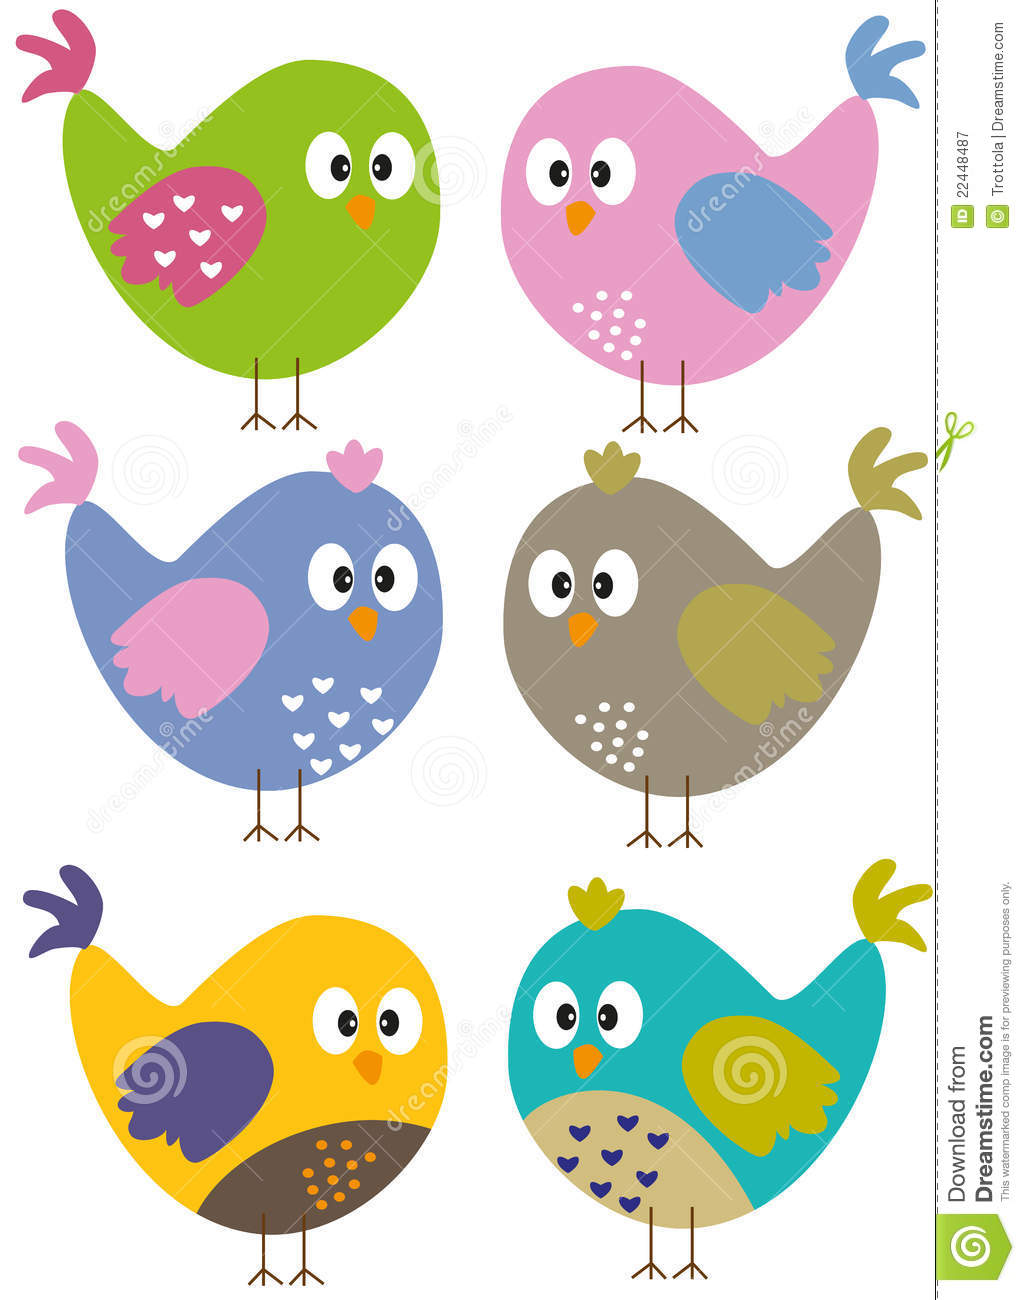 Bird house clipart free download clip art free clip art on - Colorful Birds Royalty Free Stock Photography Image